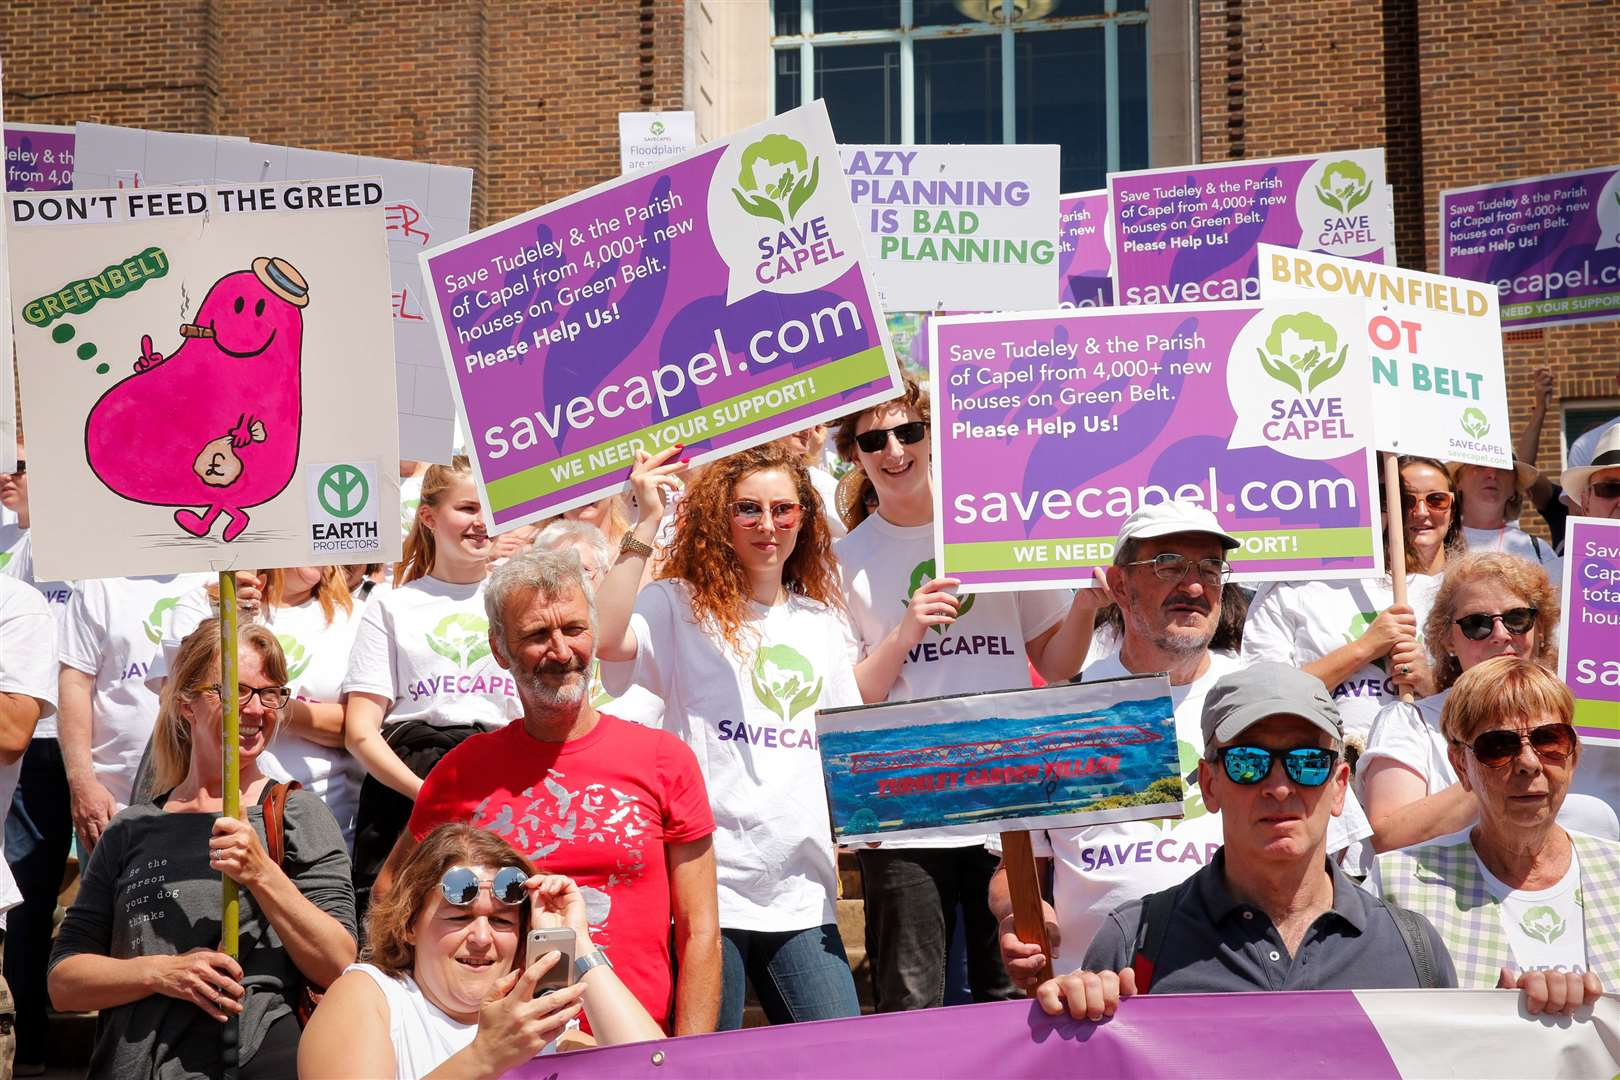 Save Capel Campaigners take to the streets